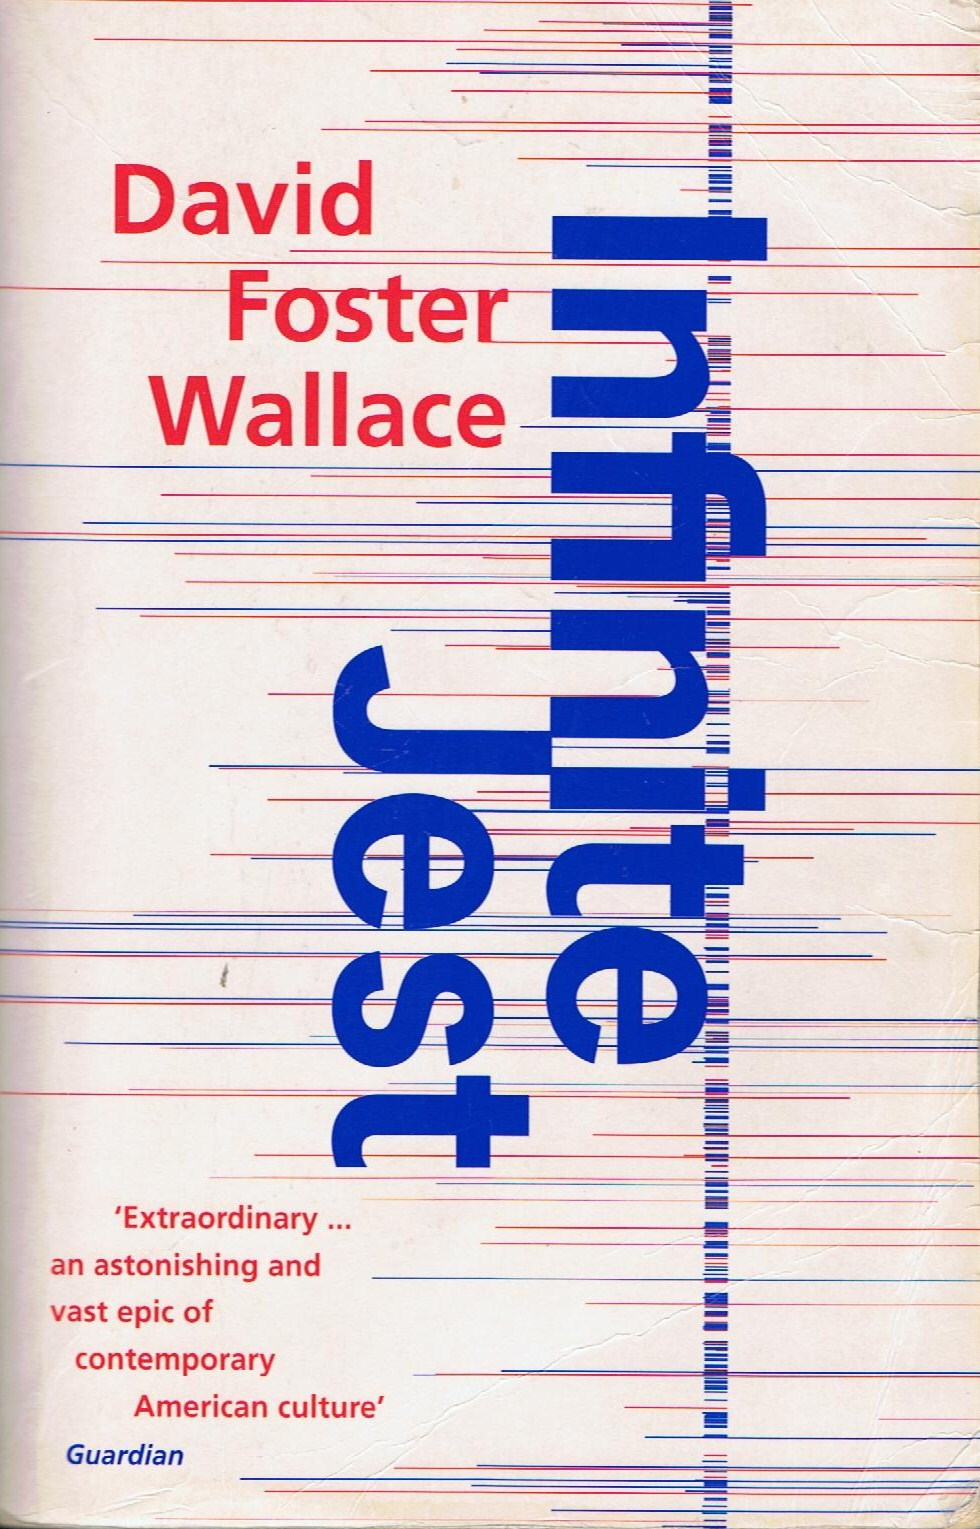 'Infinite Jest' - David Foster Wallace